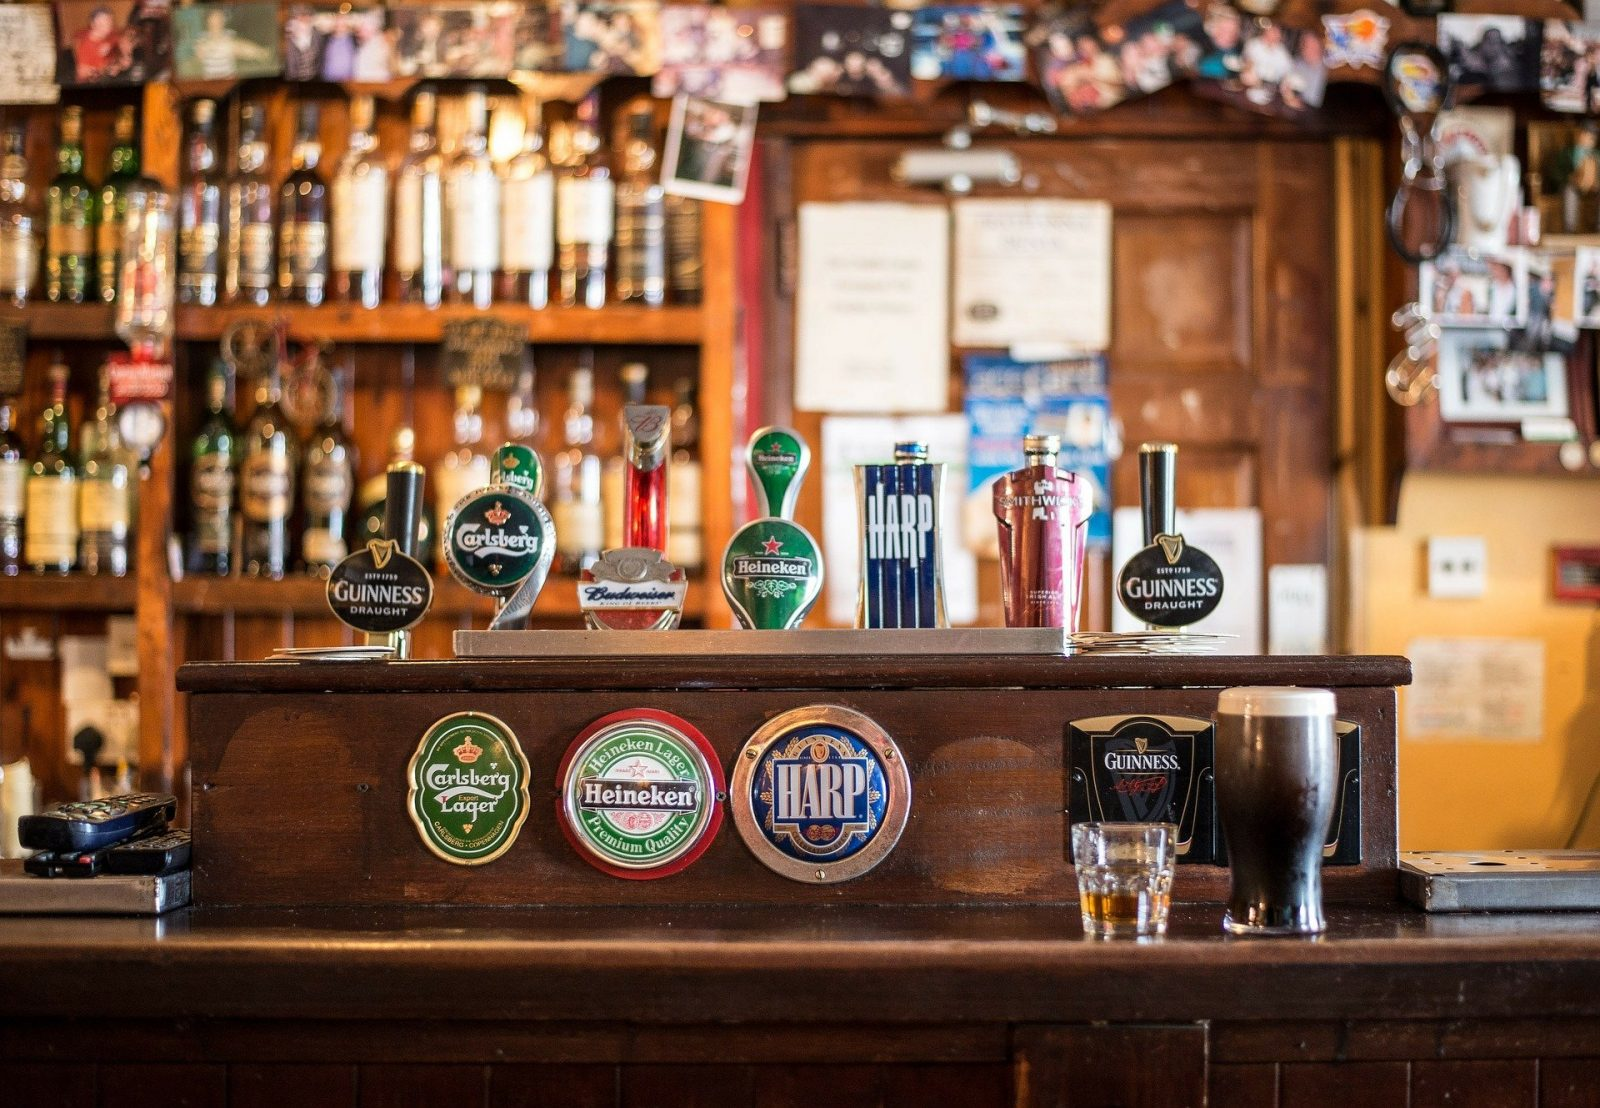 How to talk about Beer like a Pro when back in the Pub!, bar 209148 1920 1600x1108%, daily-dad, community%